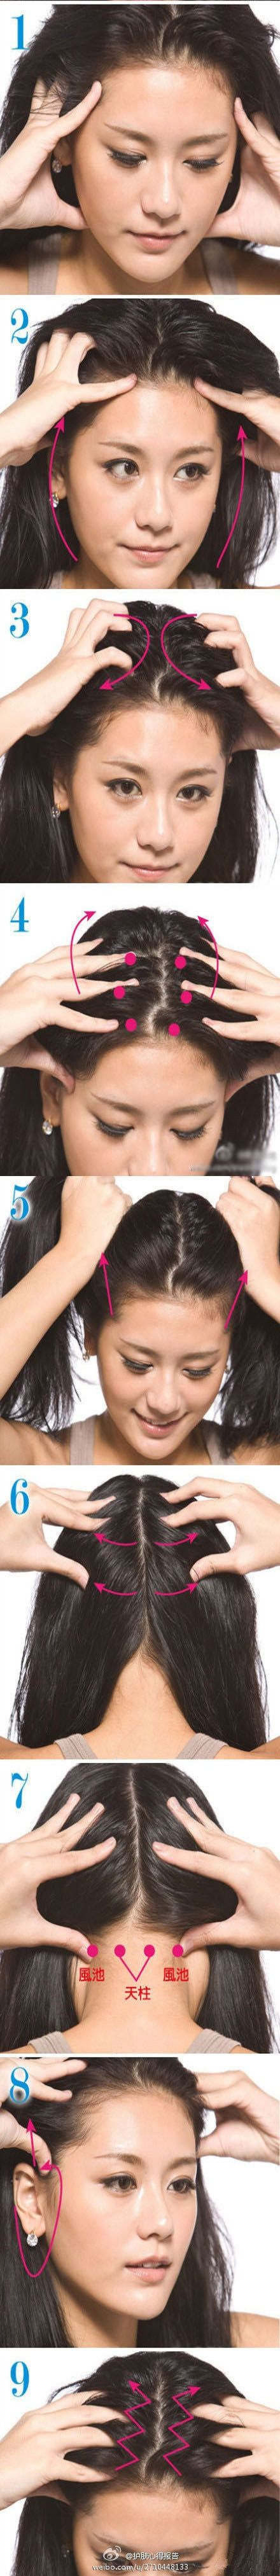 To help break-up all the dandruff and oil on your scalp, also helps your roots grow!: